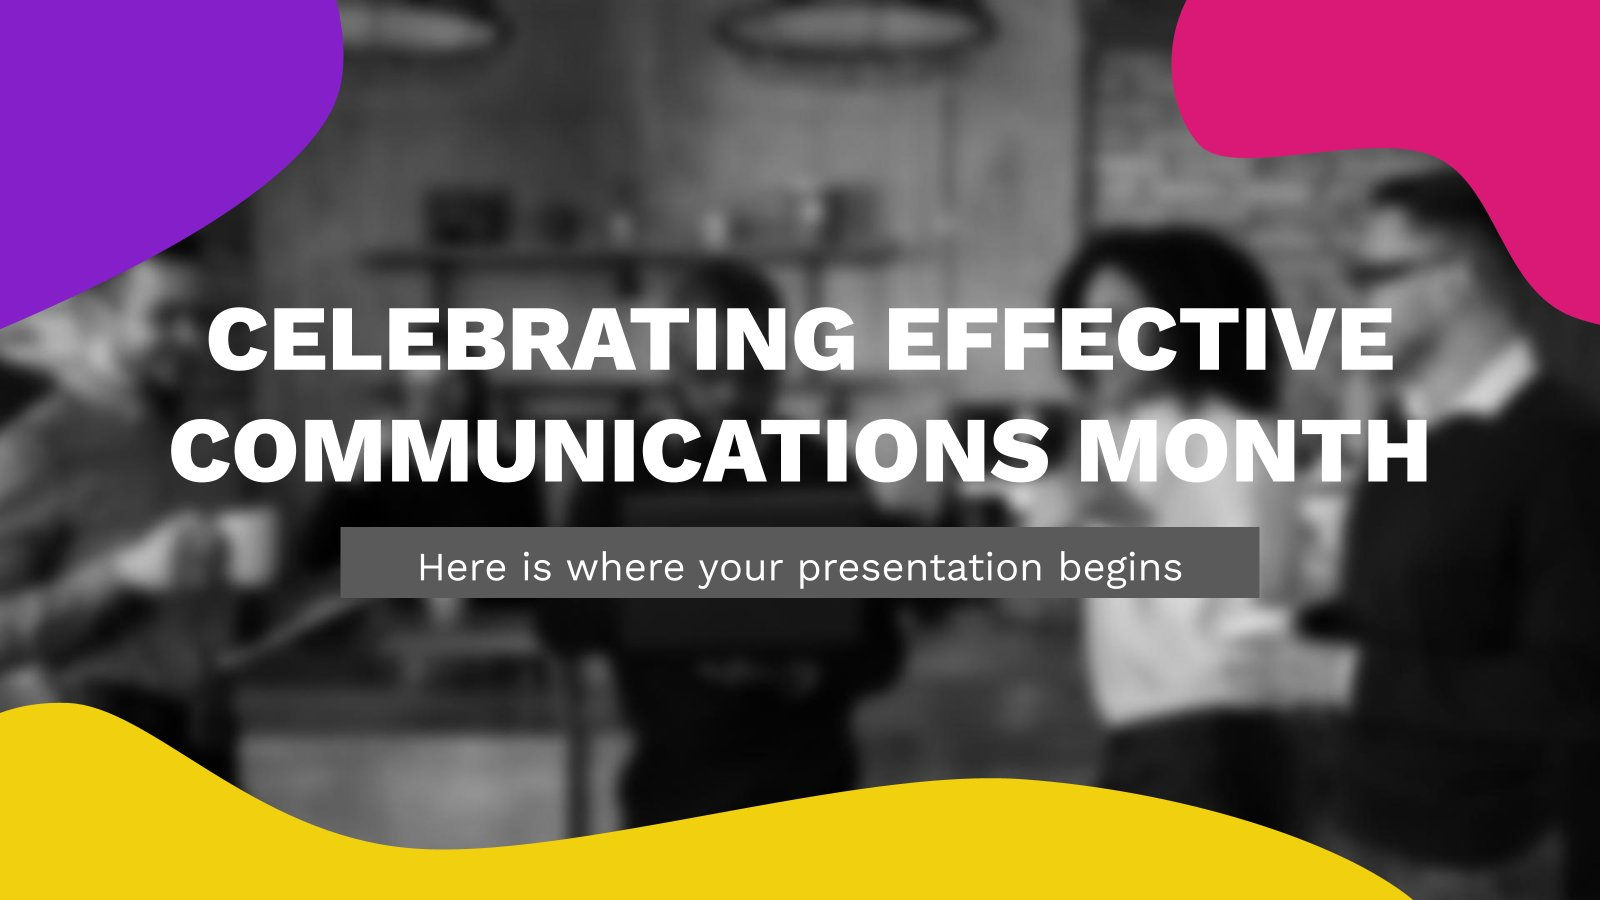 Celebrating Effective Communications Month presentation template